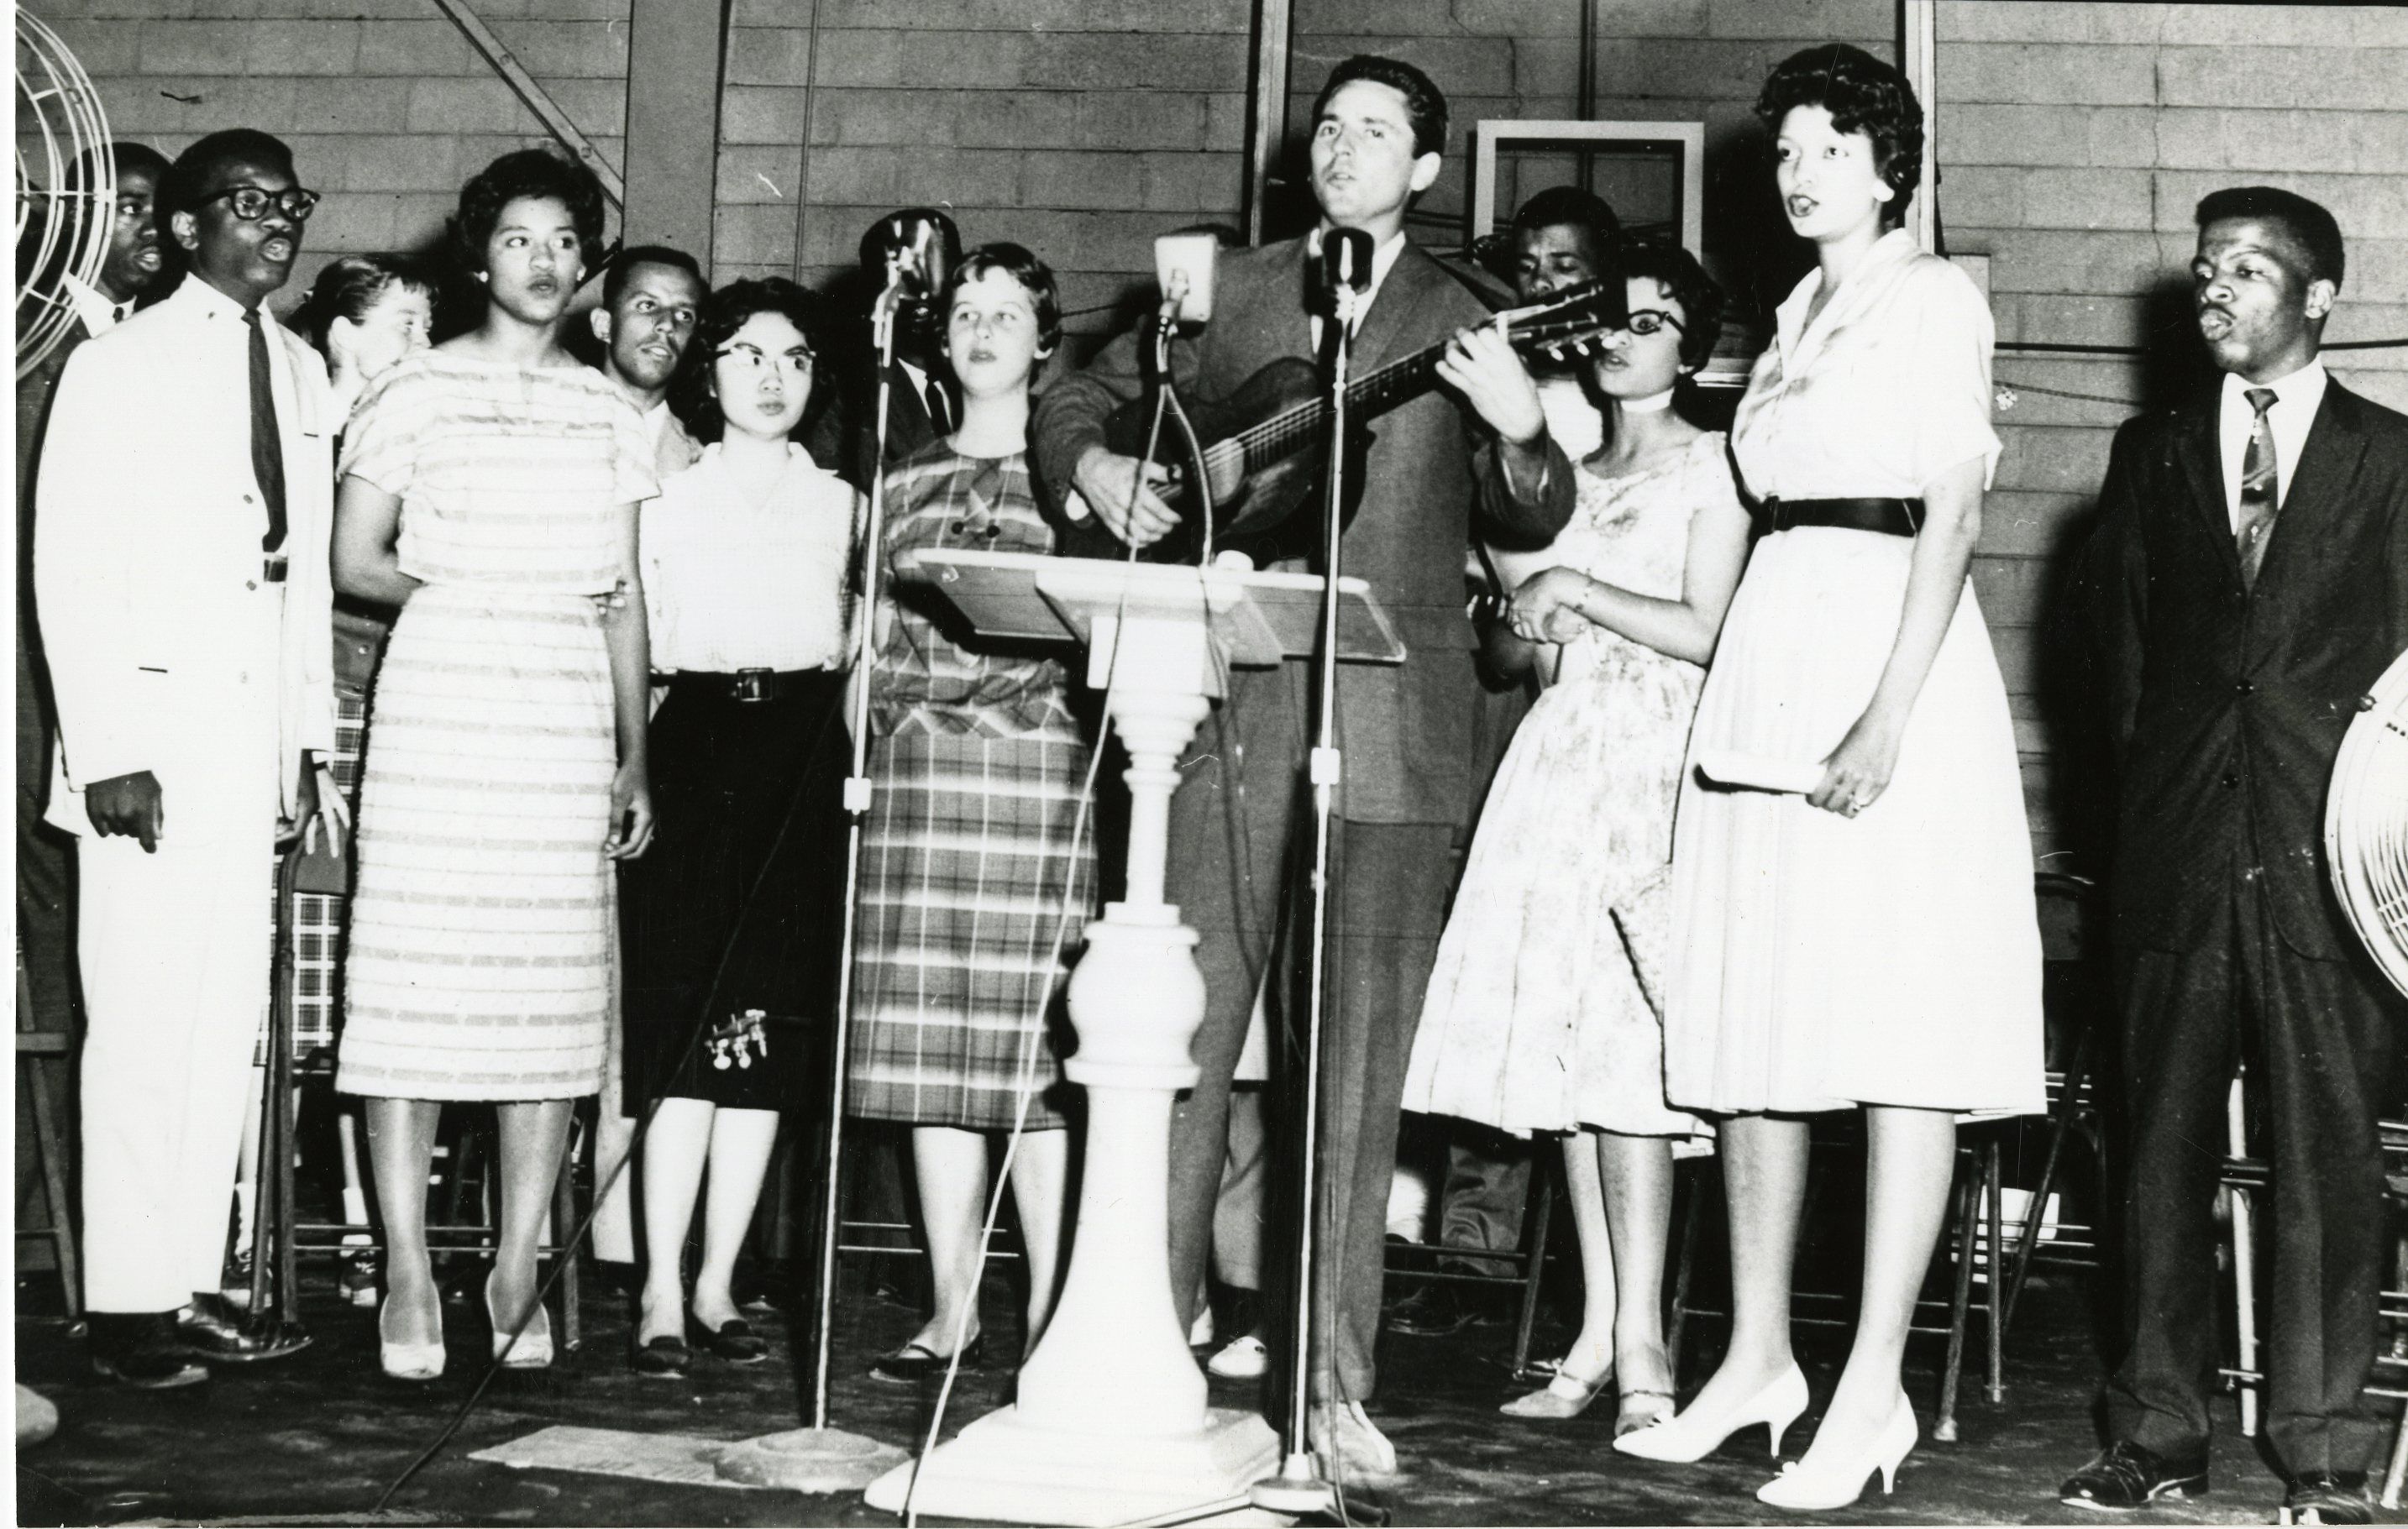 Members of SNCC singing onstage at FIsk University, 1960, including Guy Carawan, Candie Carawan, and John Lewis, amongst others. PF20008_0058_0006_002. Guy and Candie Carawan Collection (20008).